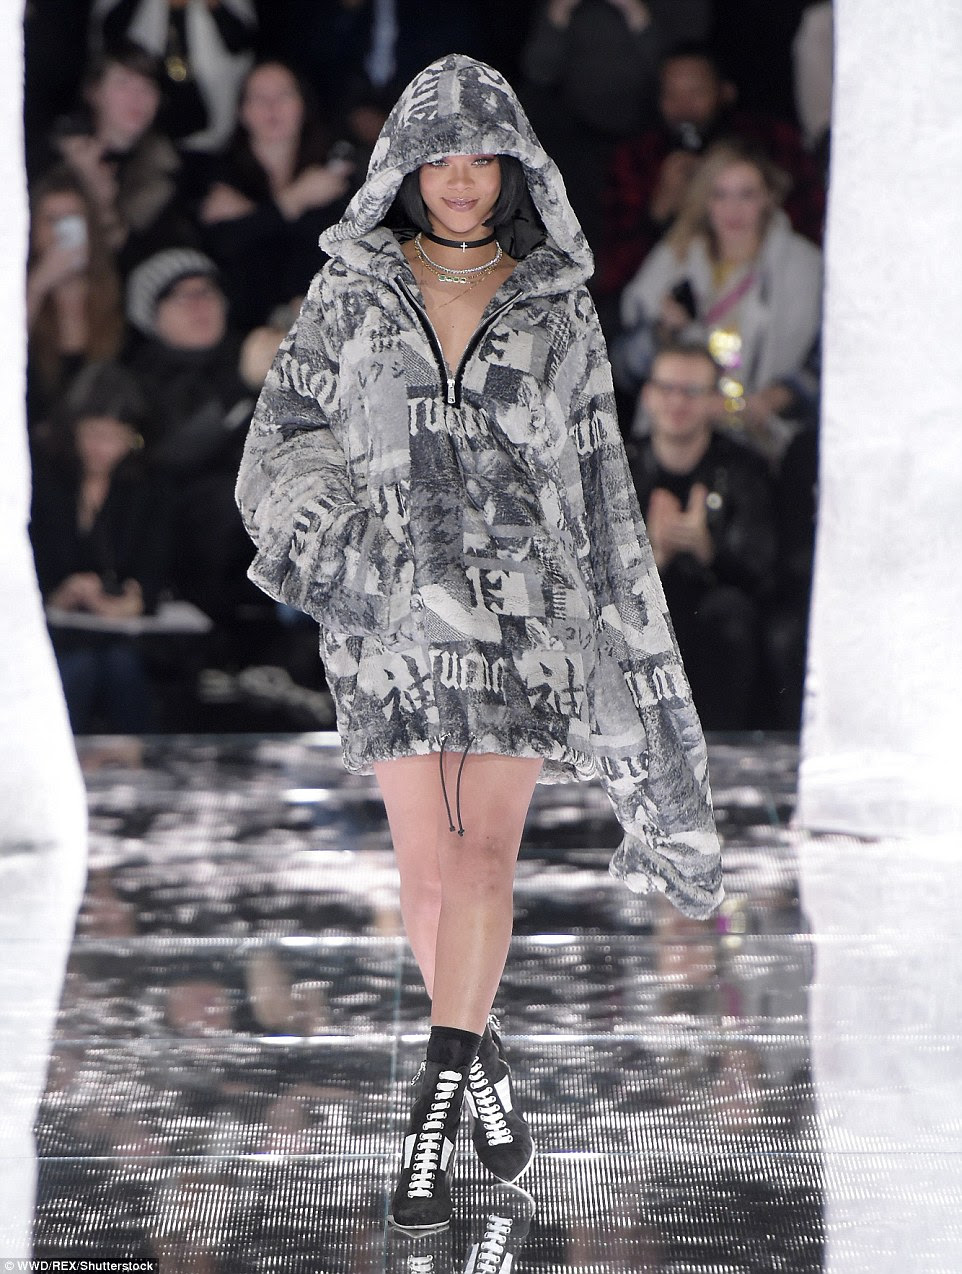 Multi-talented! Rihanna, 27, debuted her Fenty Puma Fall 2016 collection at Mercedes-Benz Fashion Week in New York City on Friday